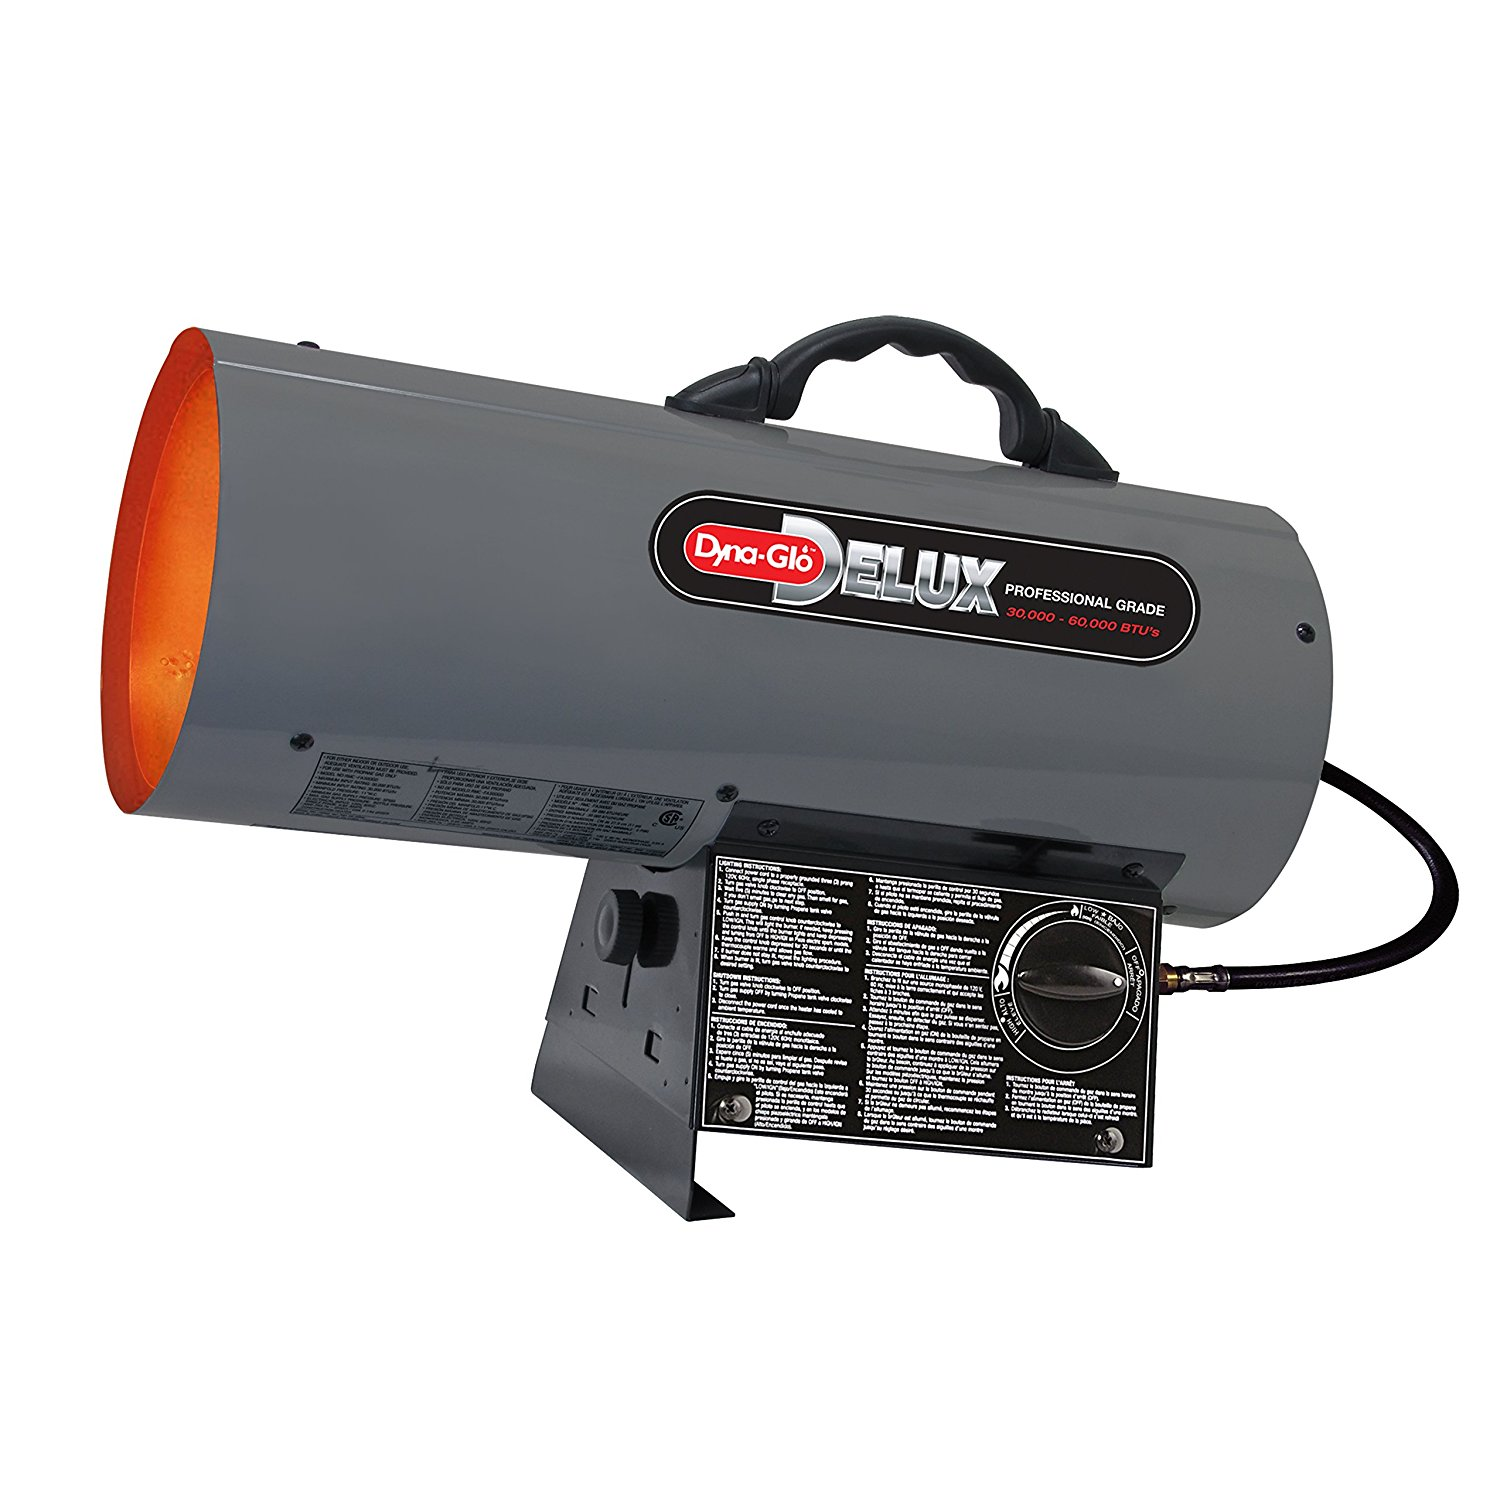 Dyna-Glo Delux Forced Air Propane Heater